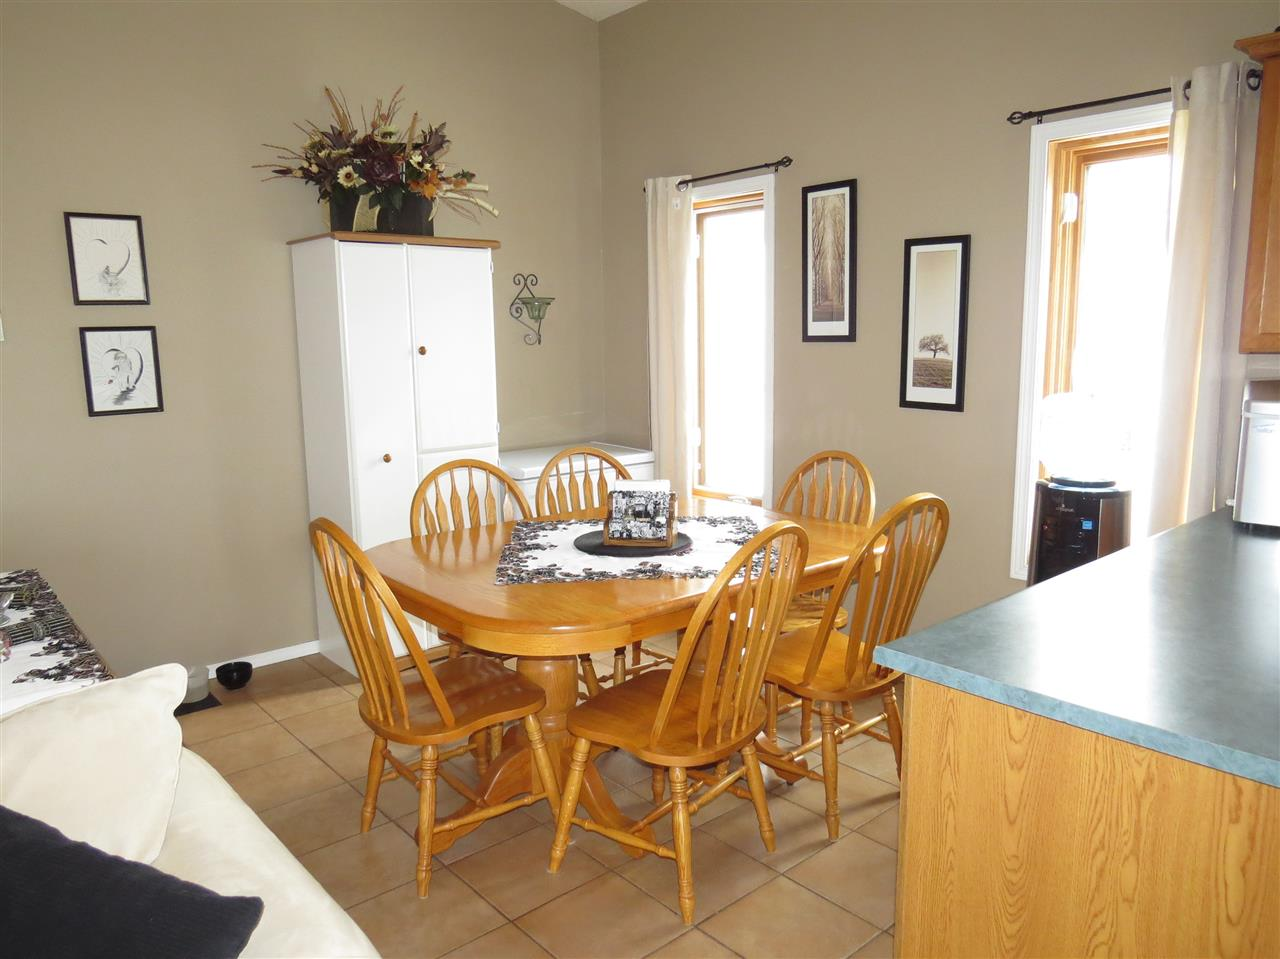 Photo 11: 14 RR 101 Twp 430A: Rural Flagstaff County House for sale : MLS® # E4049046